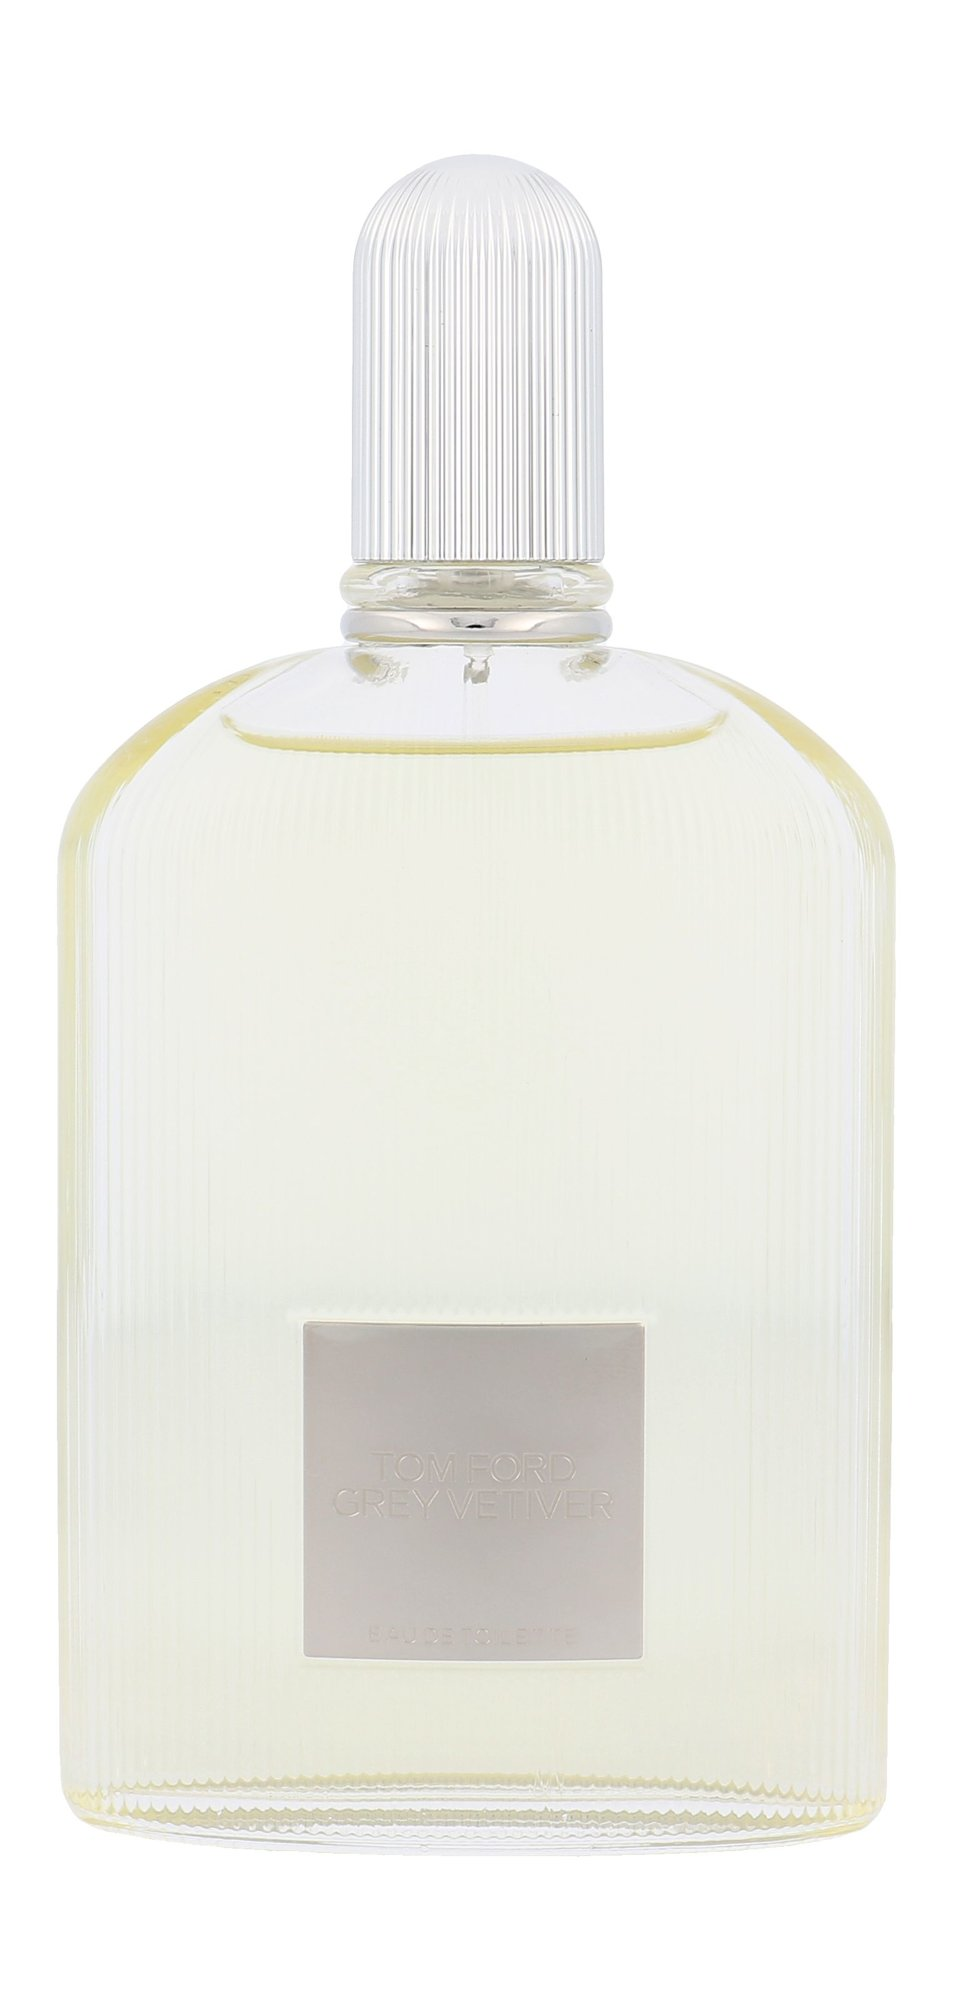 TOM FORD Grey Vetiver EDT 100ml